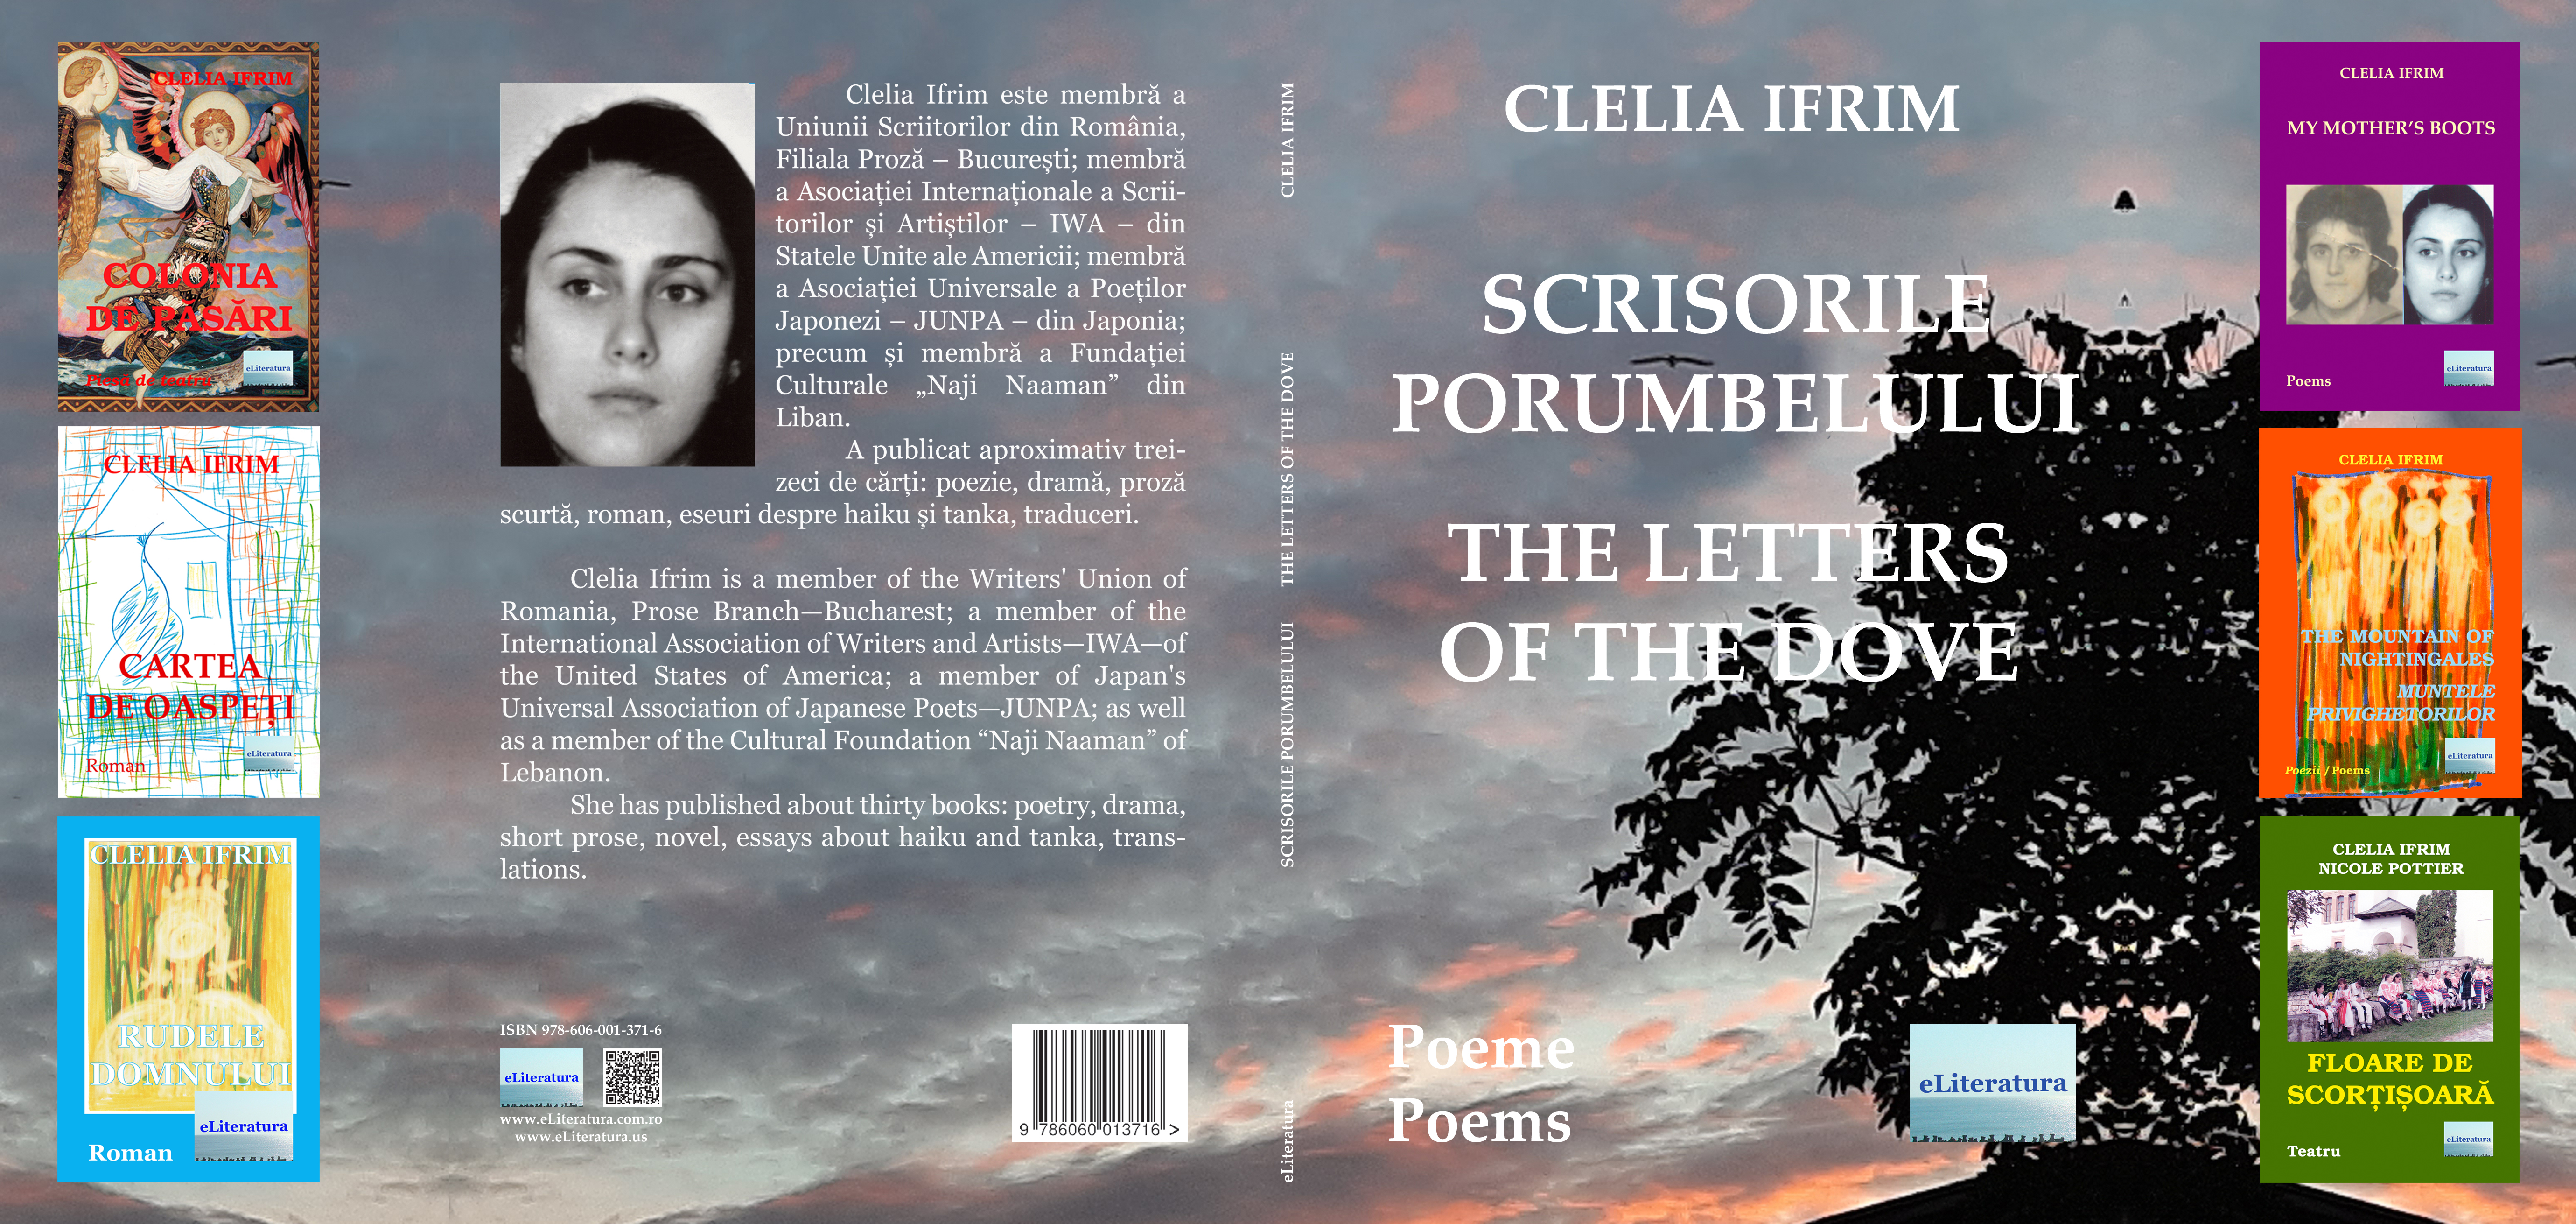 Scrisorile porumbelului: Poeme. The Letters of the Dove: Poems